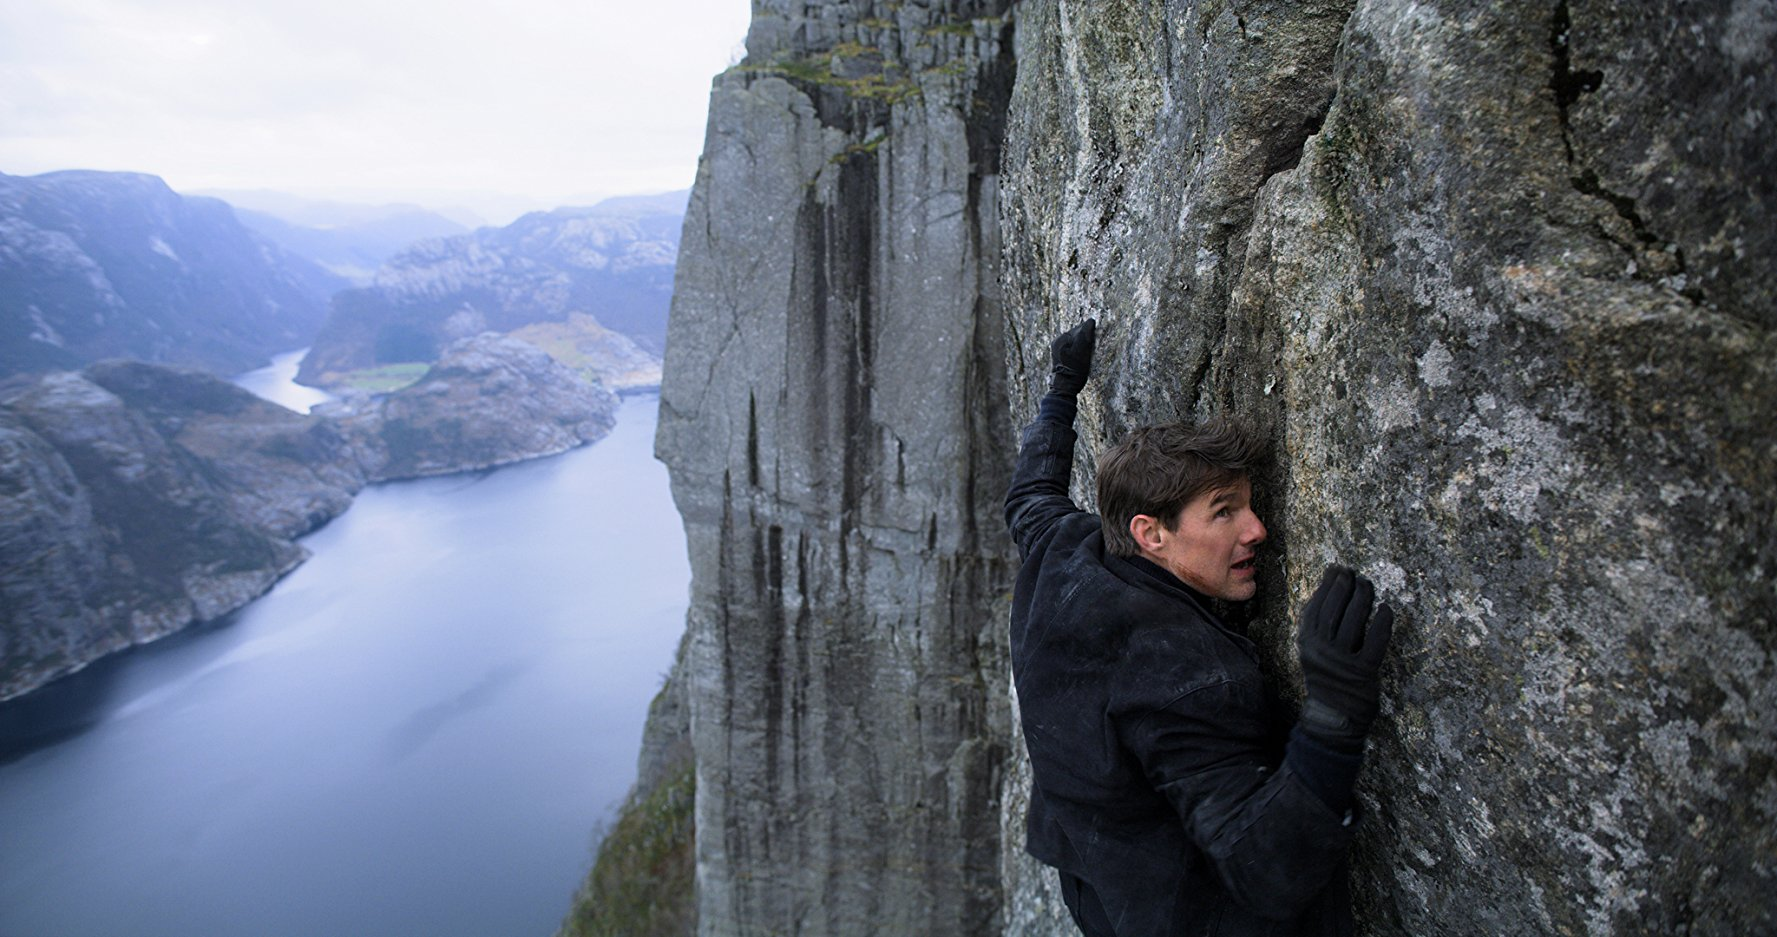 See an Exclusive Sneek Peek of 'Mission: Impossible ? Fallout' at IMAX Showings of 'Jurassic World: Fallen Kingdom'